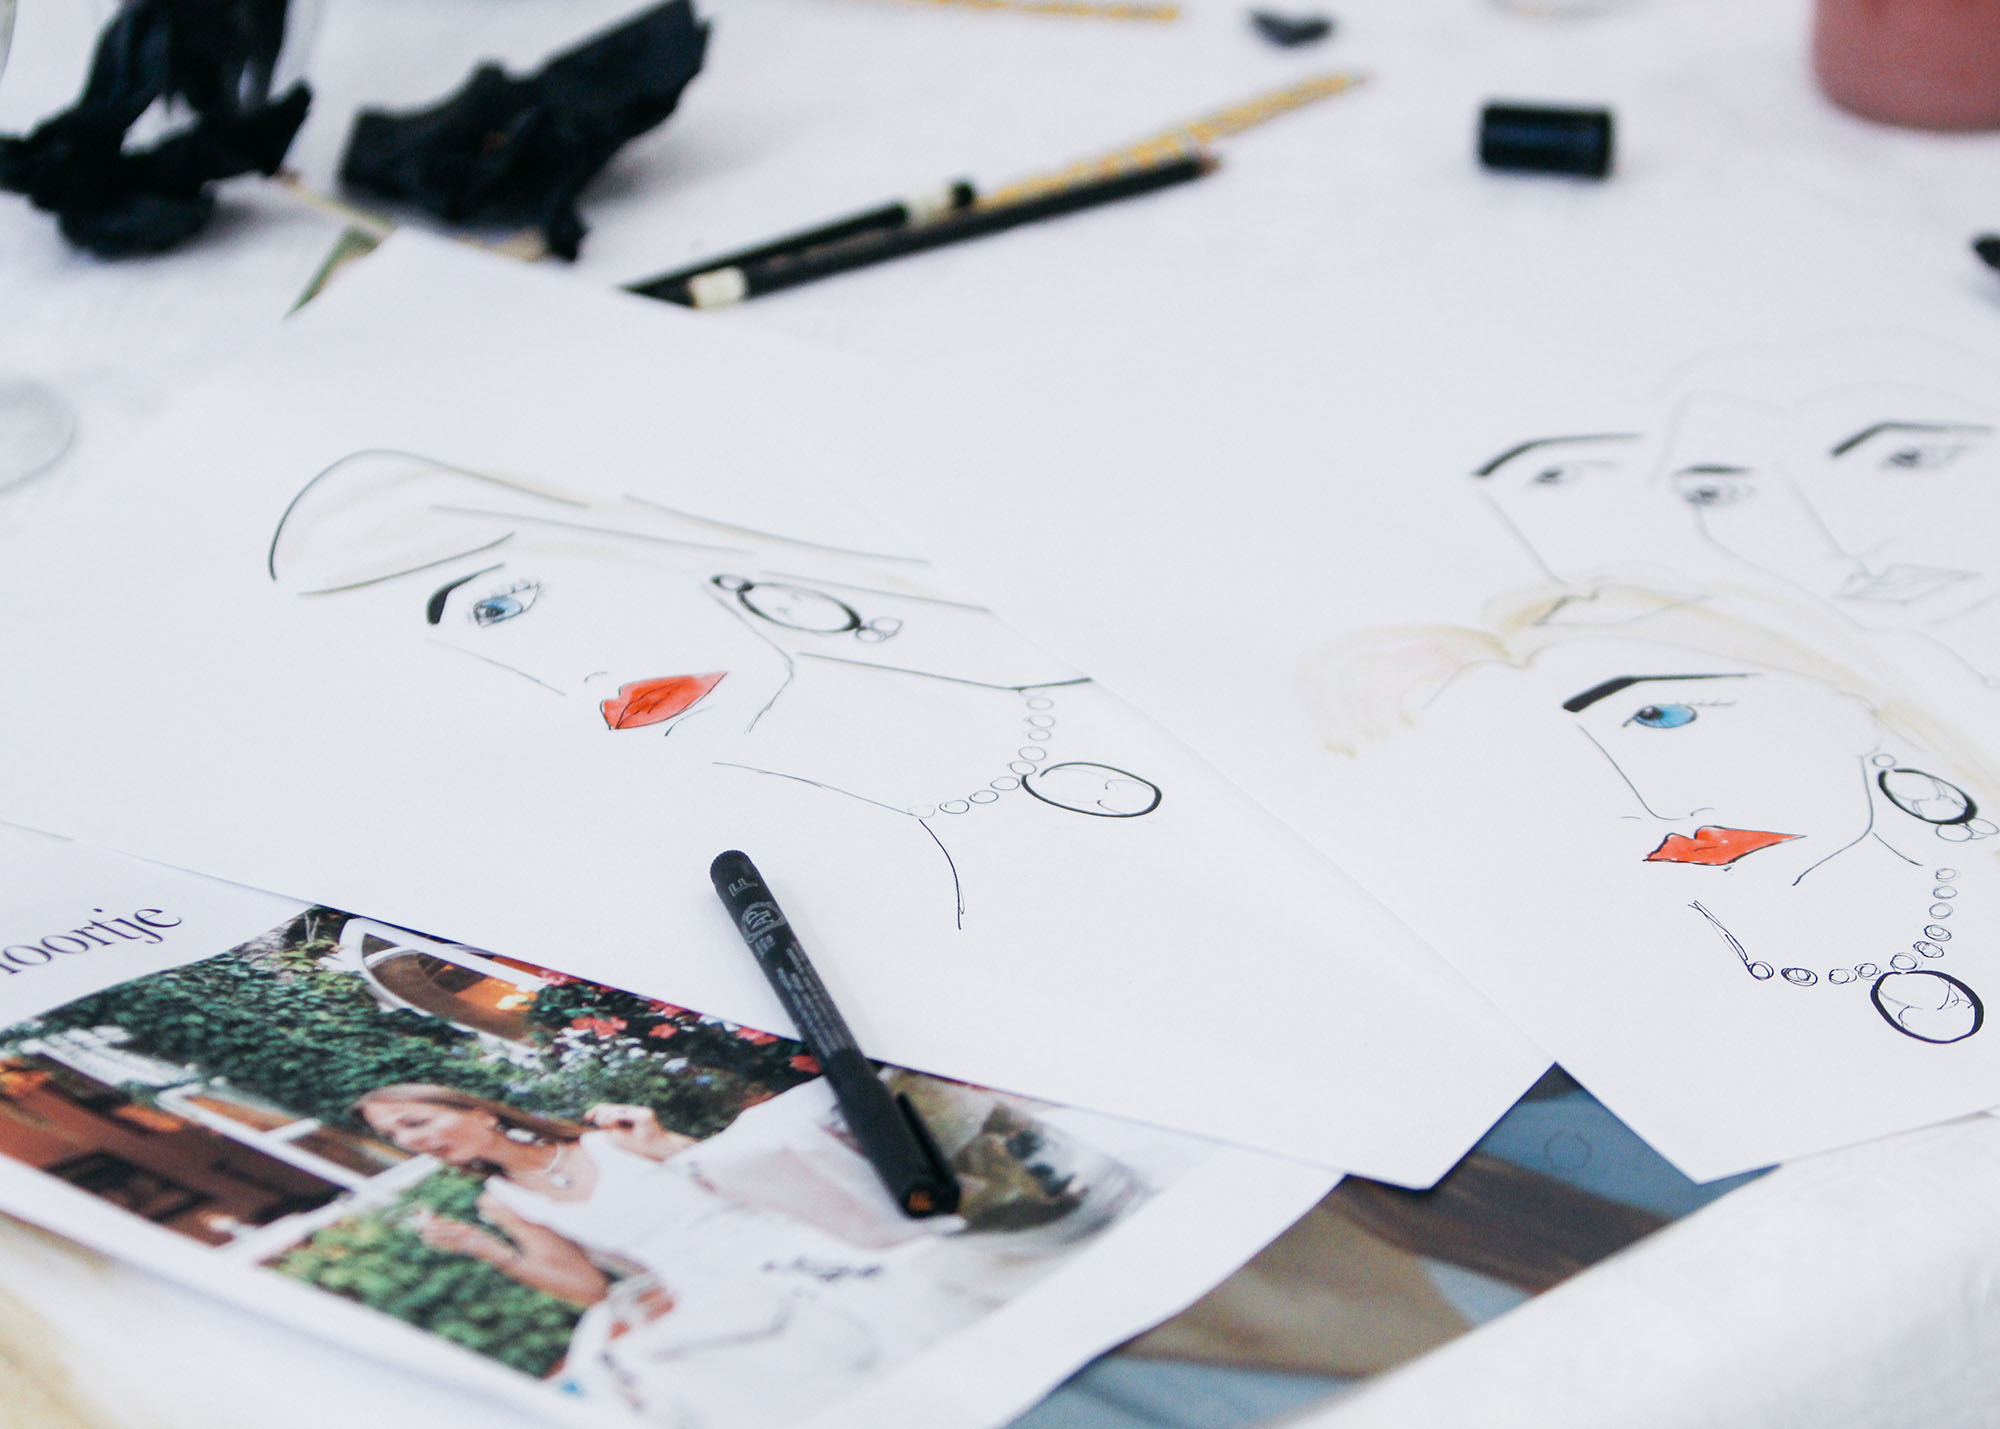 floortjeloves, evenement, event, bumble, illustration workshop, bumble illustration workshop, bumble bff, bumble bff illustration workshop, sella molenaar, illustratie, illustratie workshop, workshop, tekenen